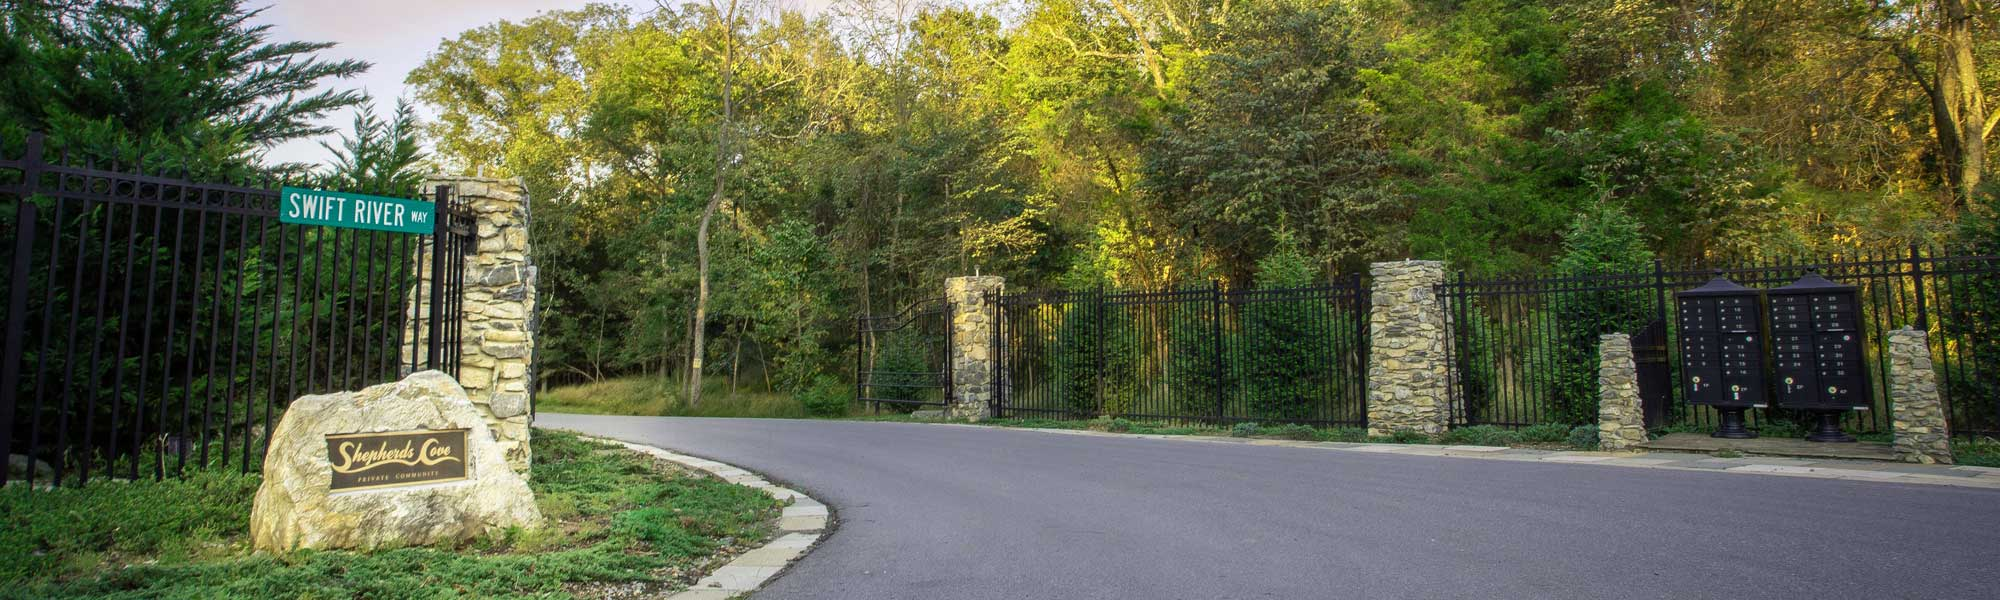 WV River front homes for sale